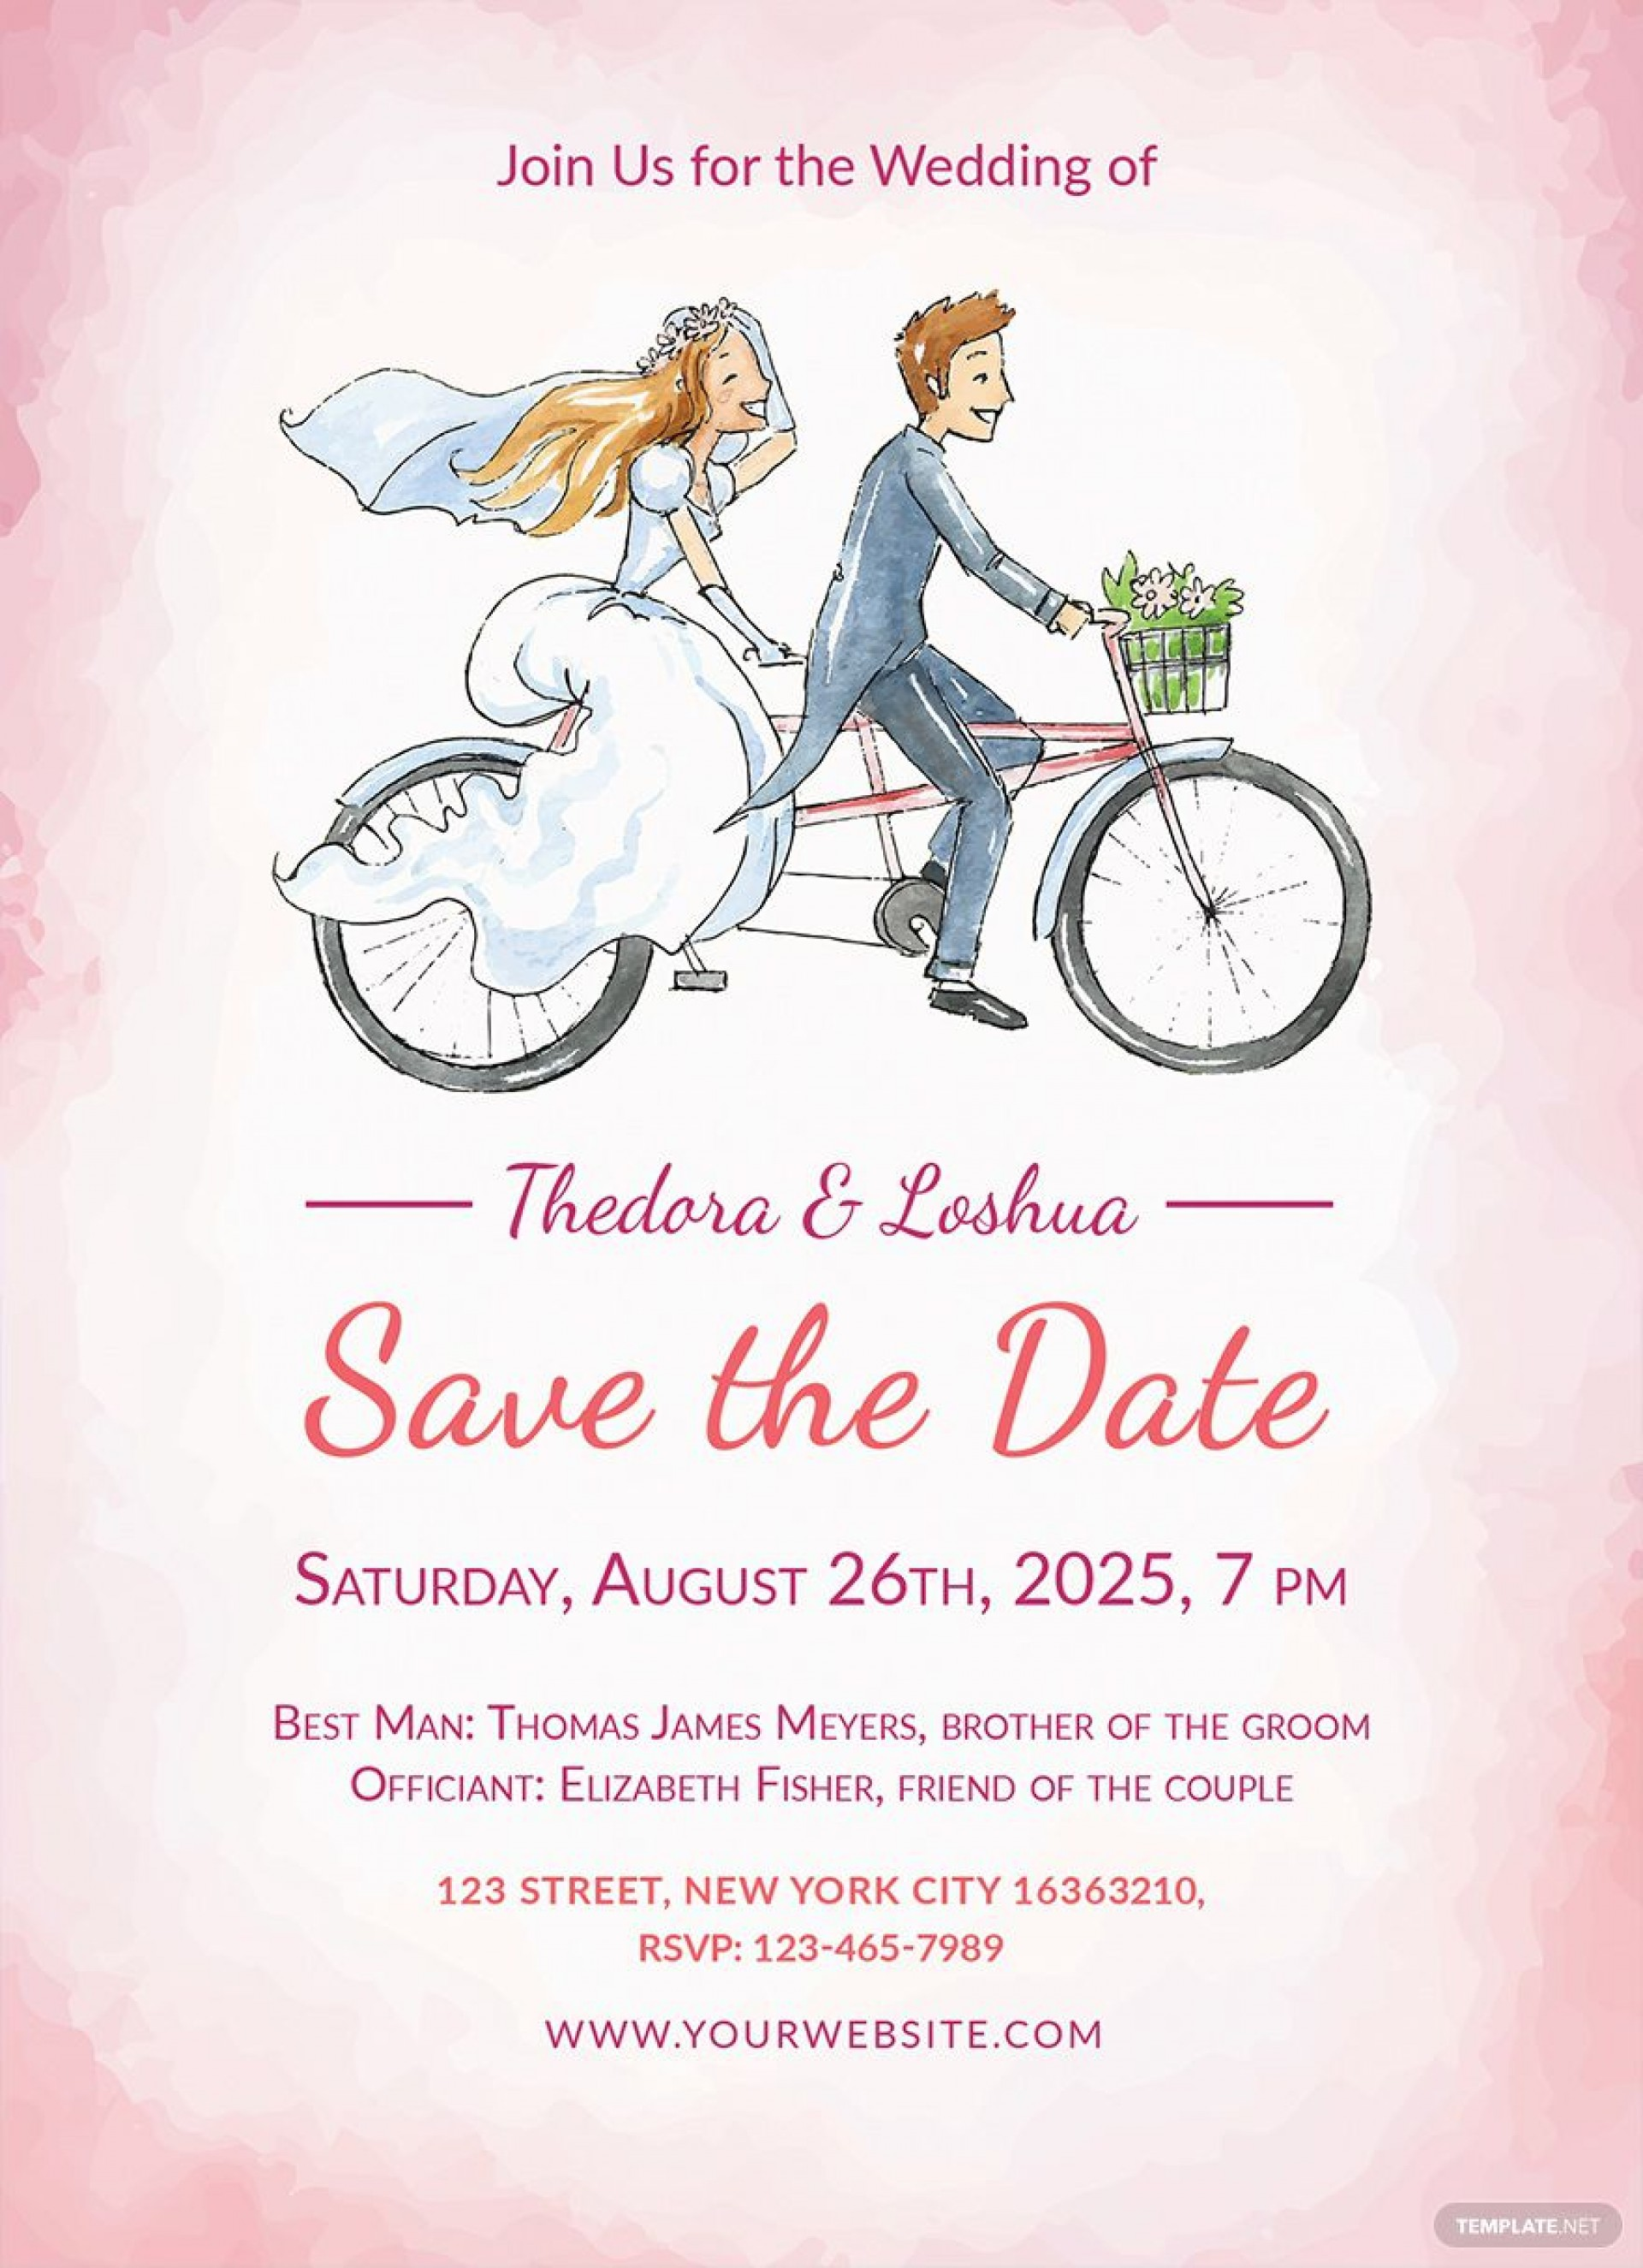 009 Unforgettable Free Wedding Invitation Template Printable Image  For Microsoft Word Mac1920